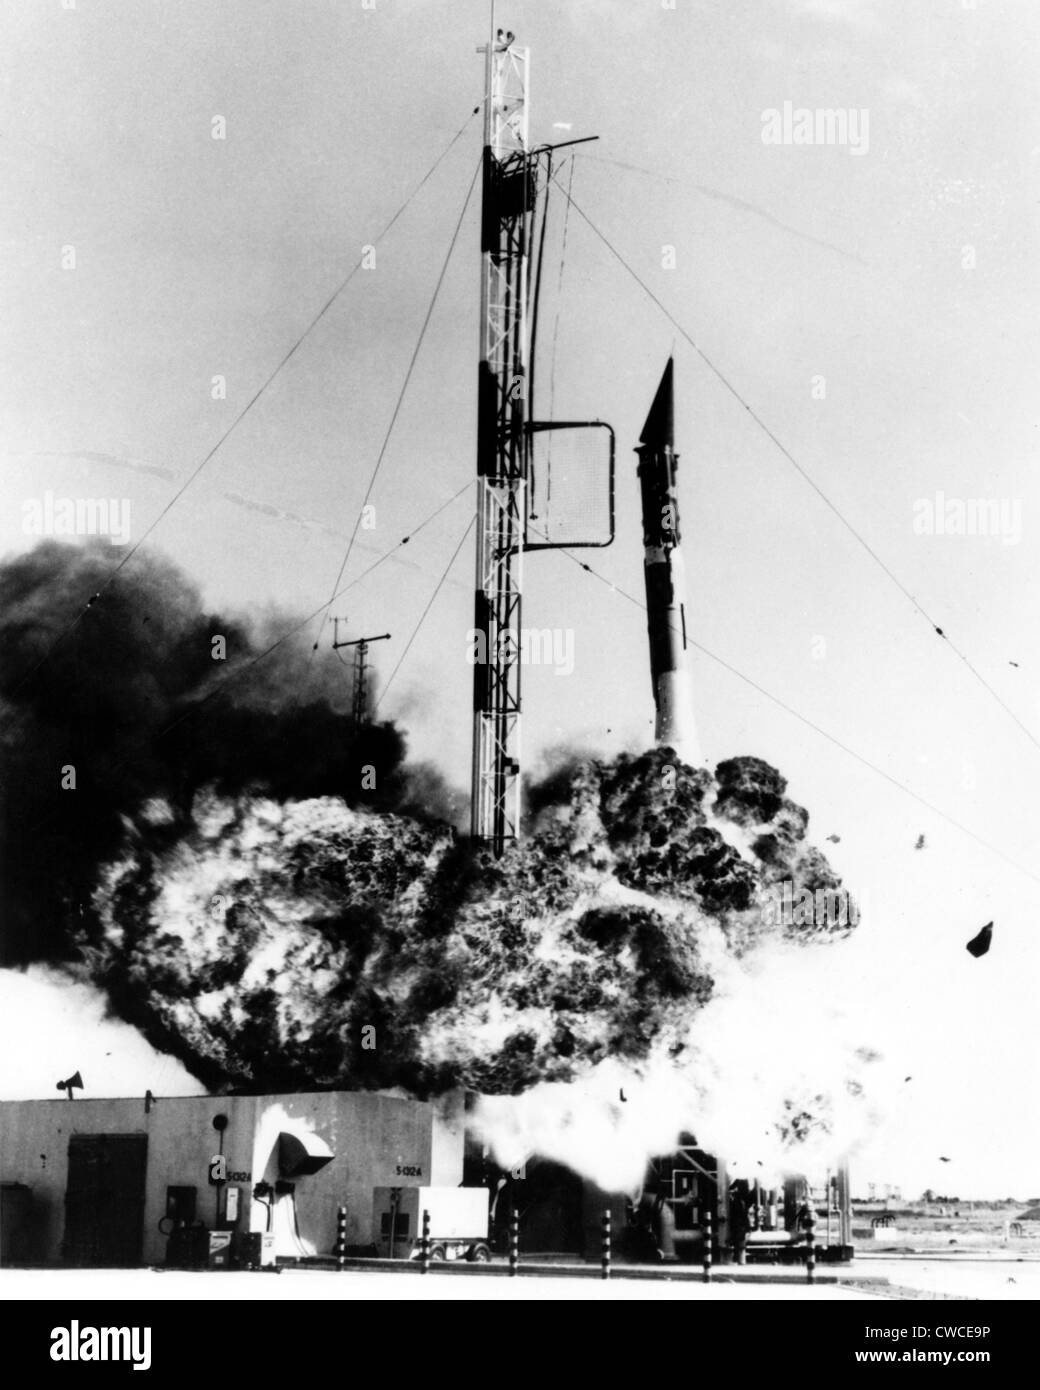 Vanguard missile exploding on its Cape Canaveral launch pad on December 6, 1957. The failure occurred after the - Stock Image